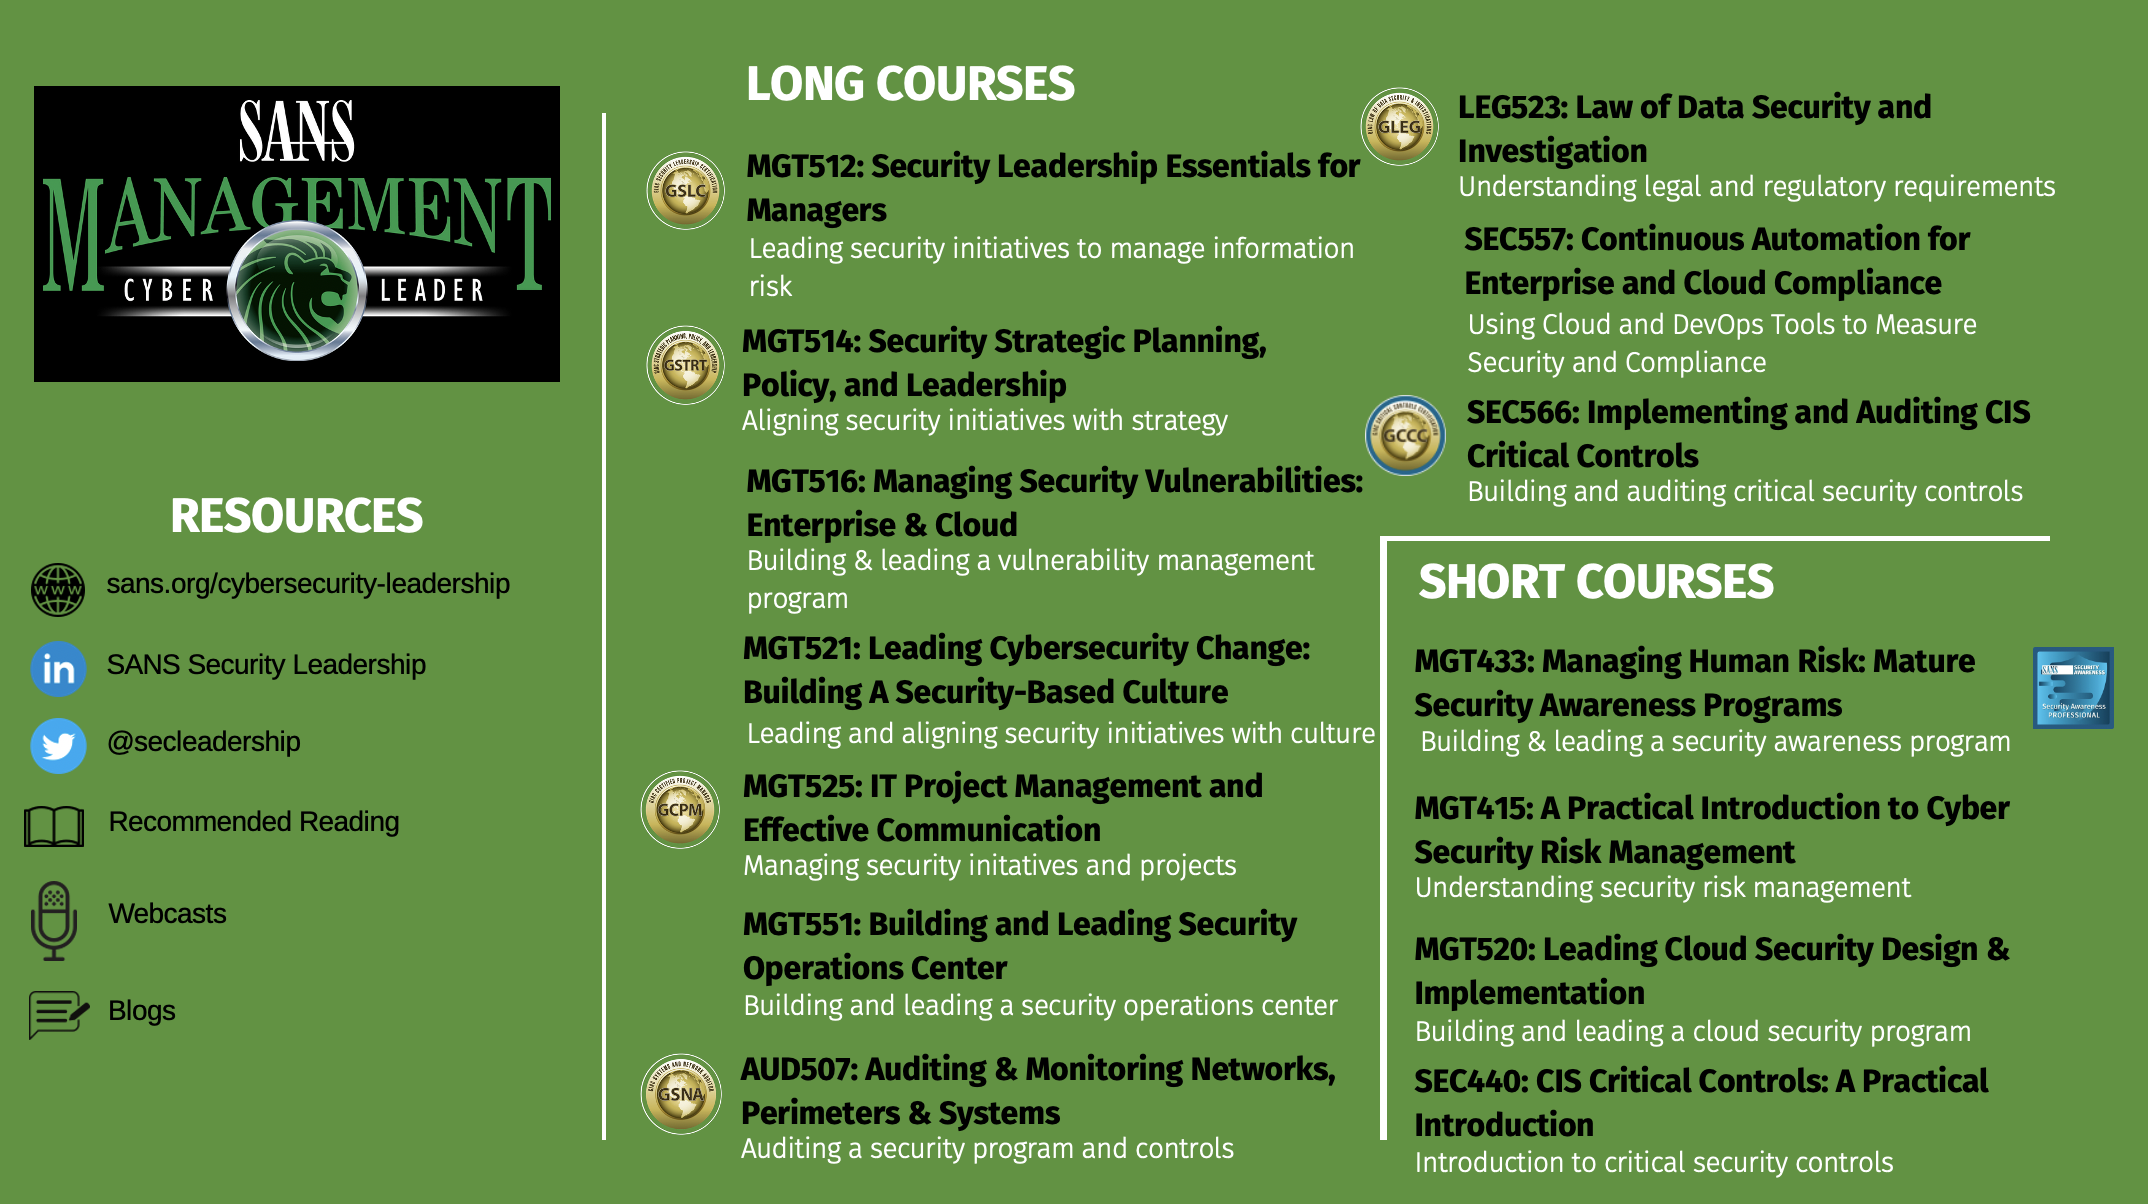 CoursewareVersion_CybersecurityLeadershipCurriculum_210331.png